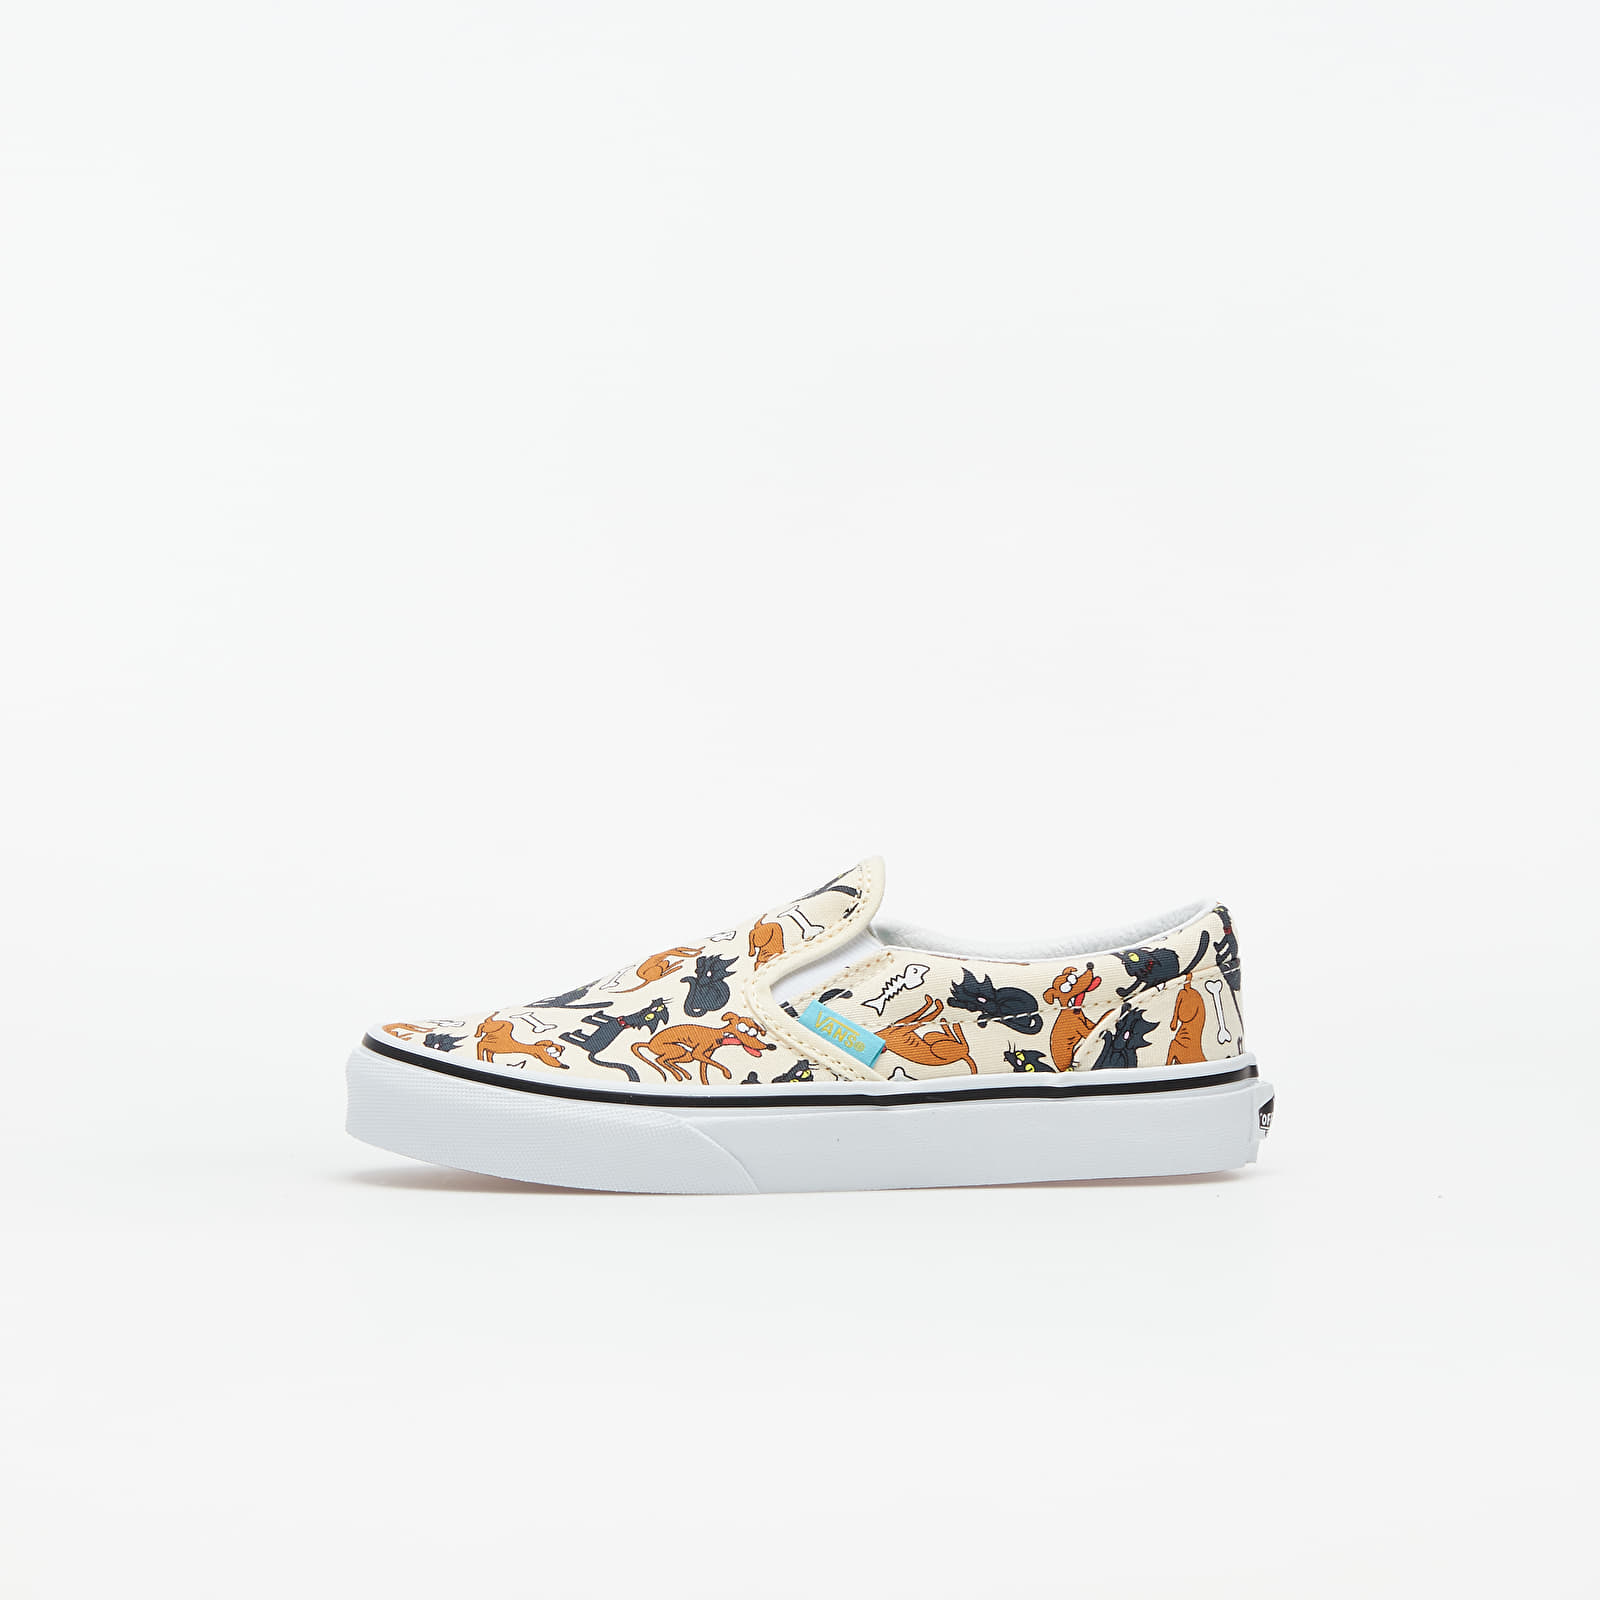 Chaussures et baskets enfants Vans Classic Slip-On (The Simpsons) Family Pets